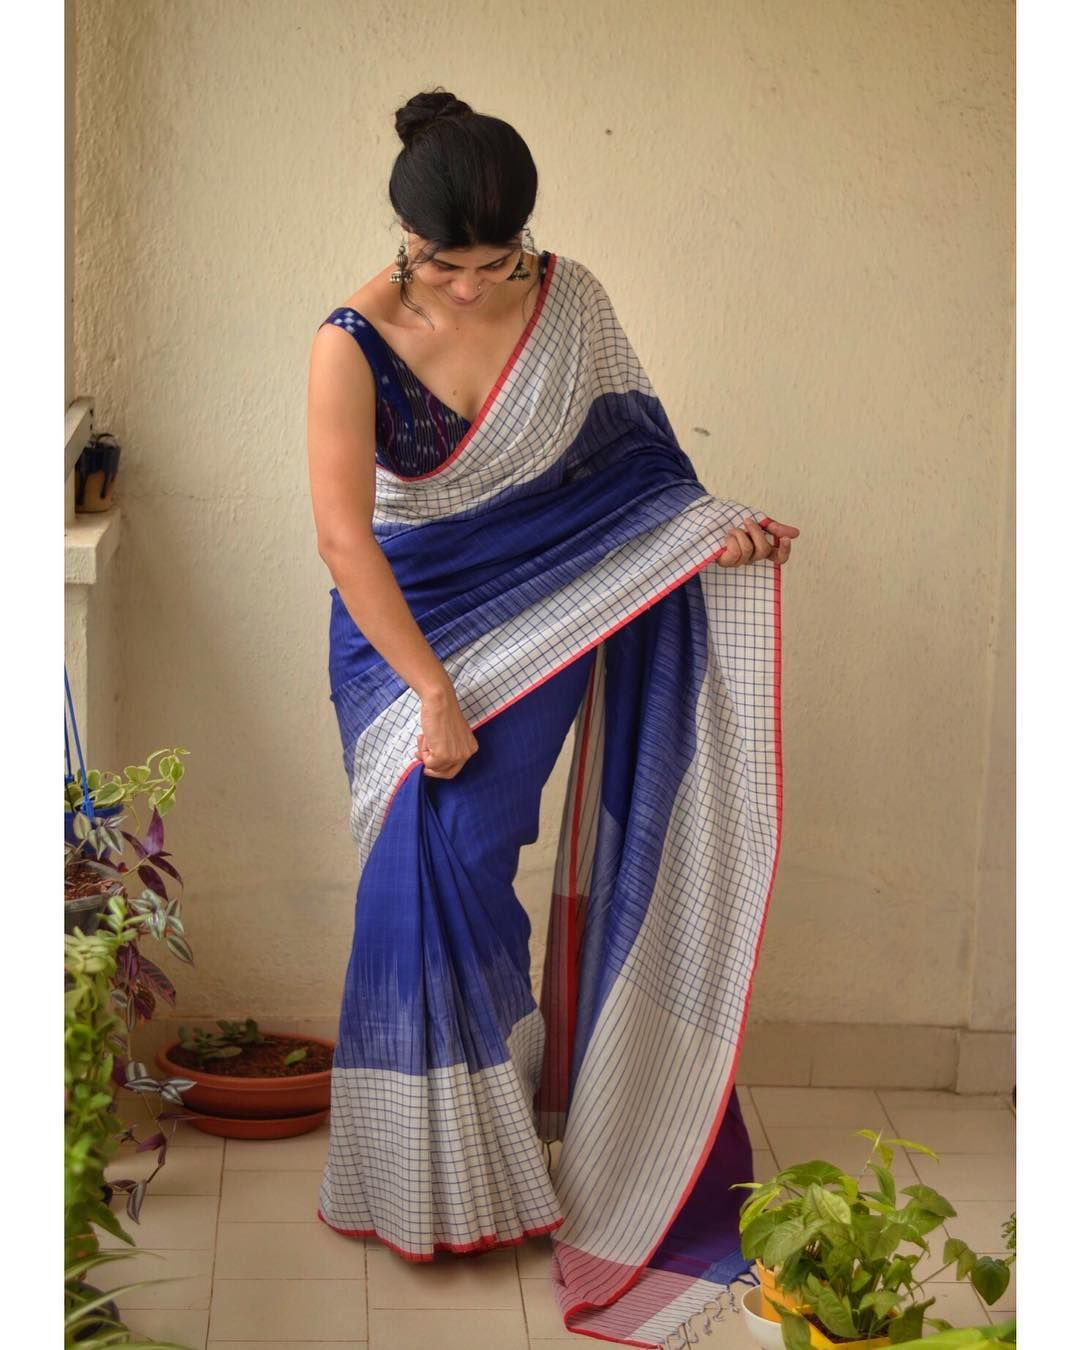 Kerala Party Hairstyles: This Brand's Sarees Will Earn You Compliments This Summer